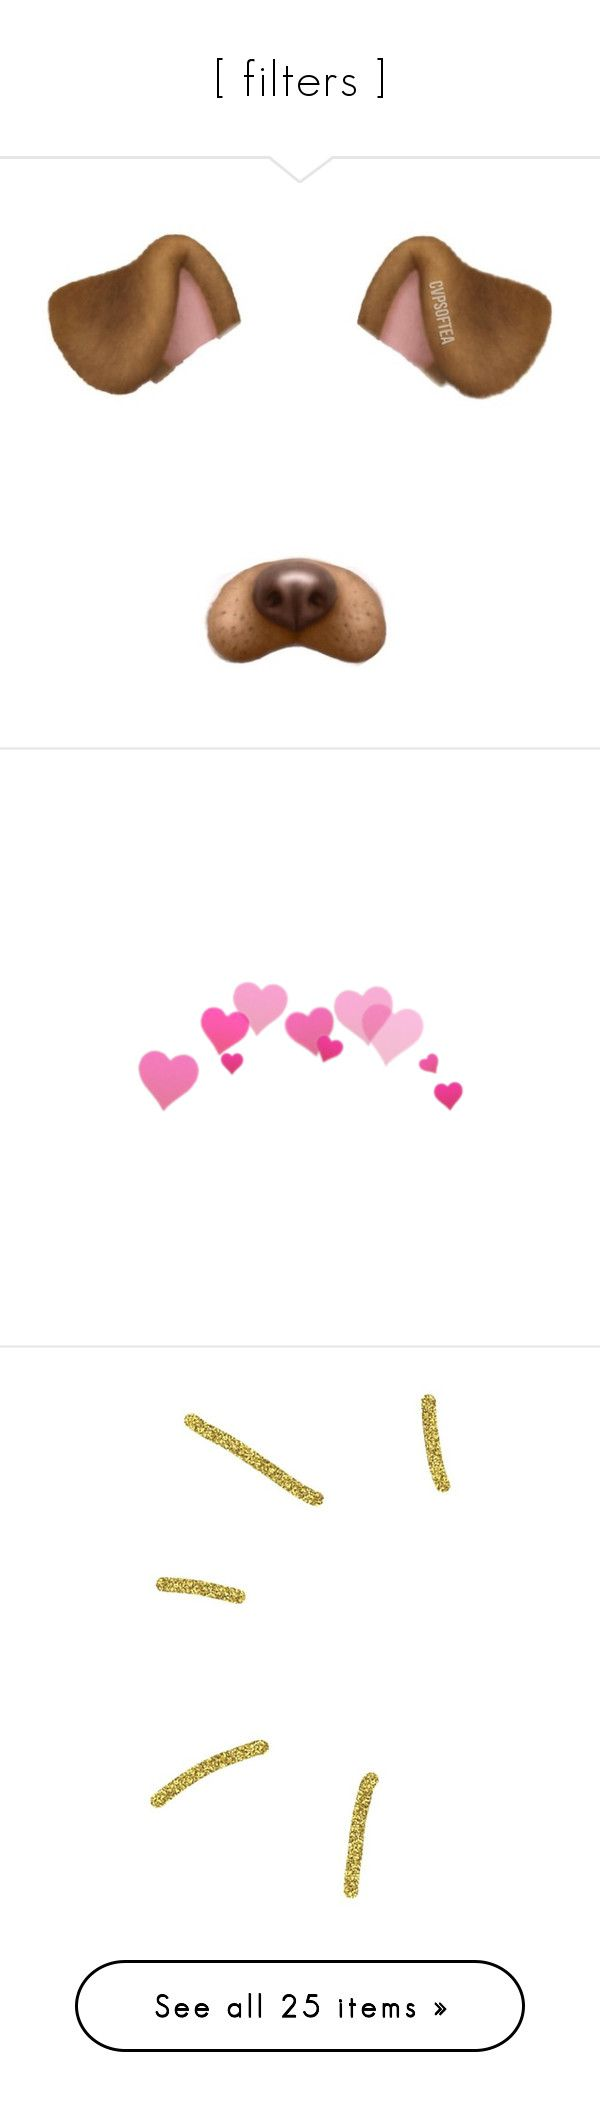 """""""[ filters ]"""" by itstepna ❤ liked on Polyvore featuring fillers, extra, emojis, fillers - brown, snapchat, backgrounds, text, quotes, effect and doodle"""